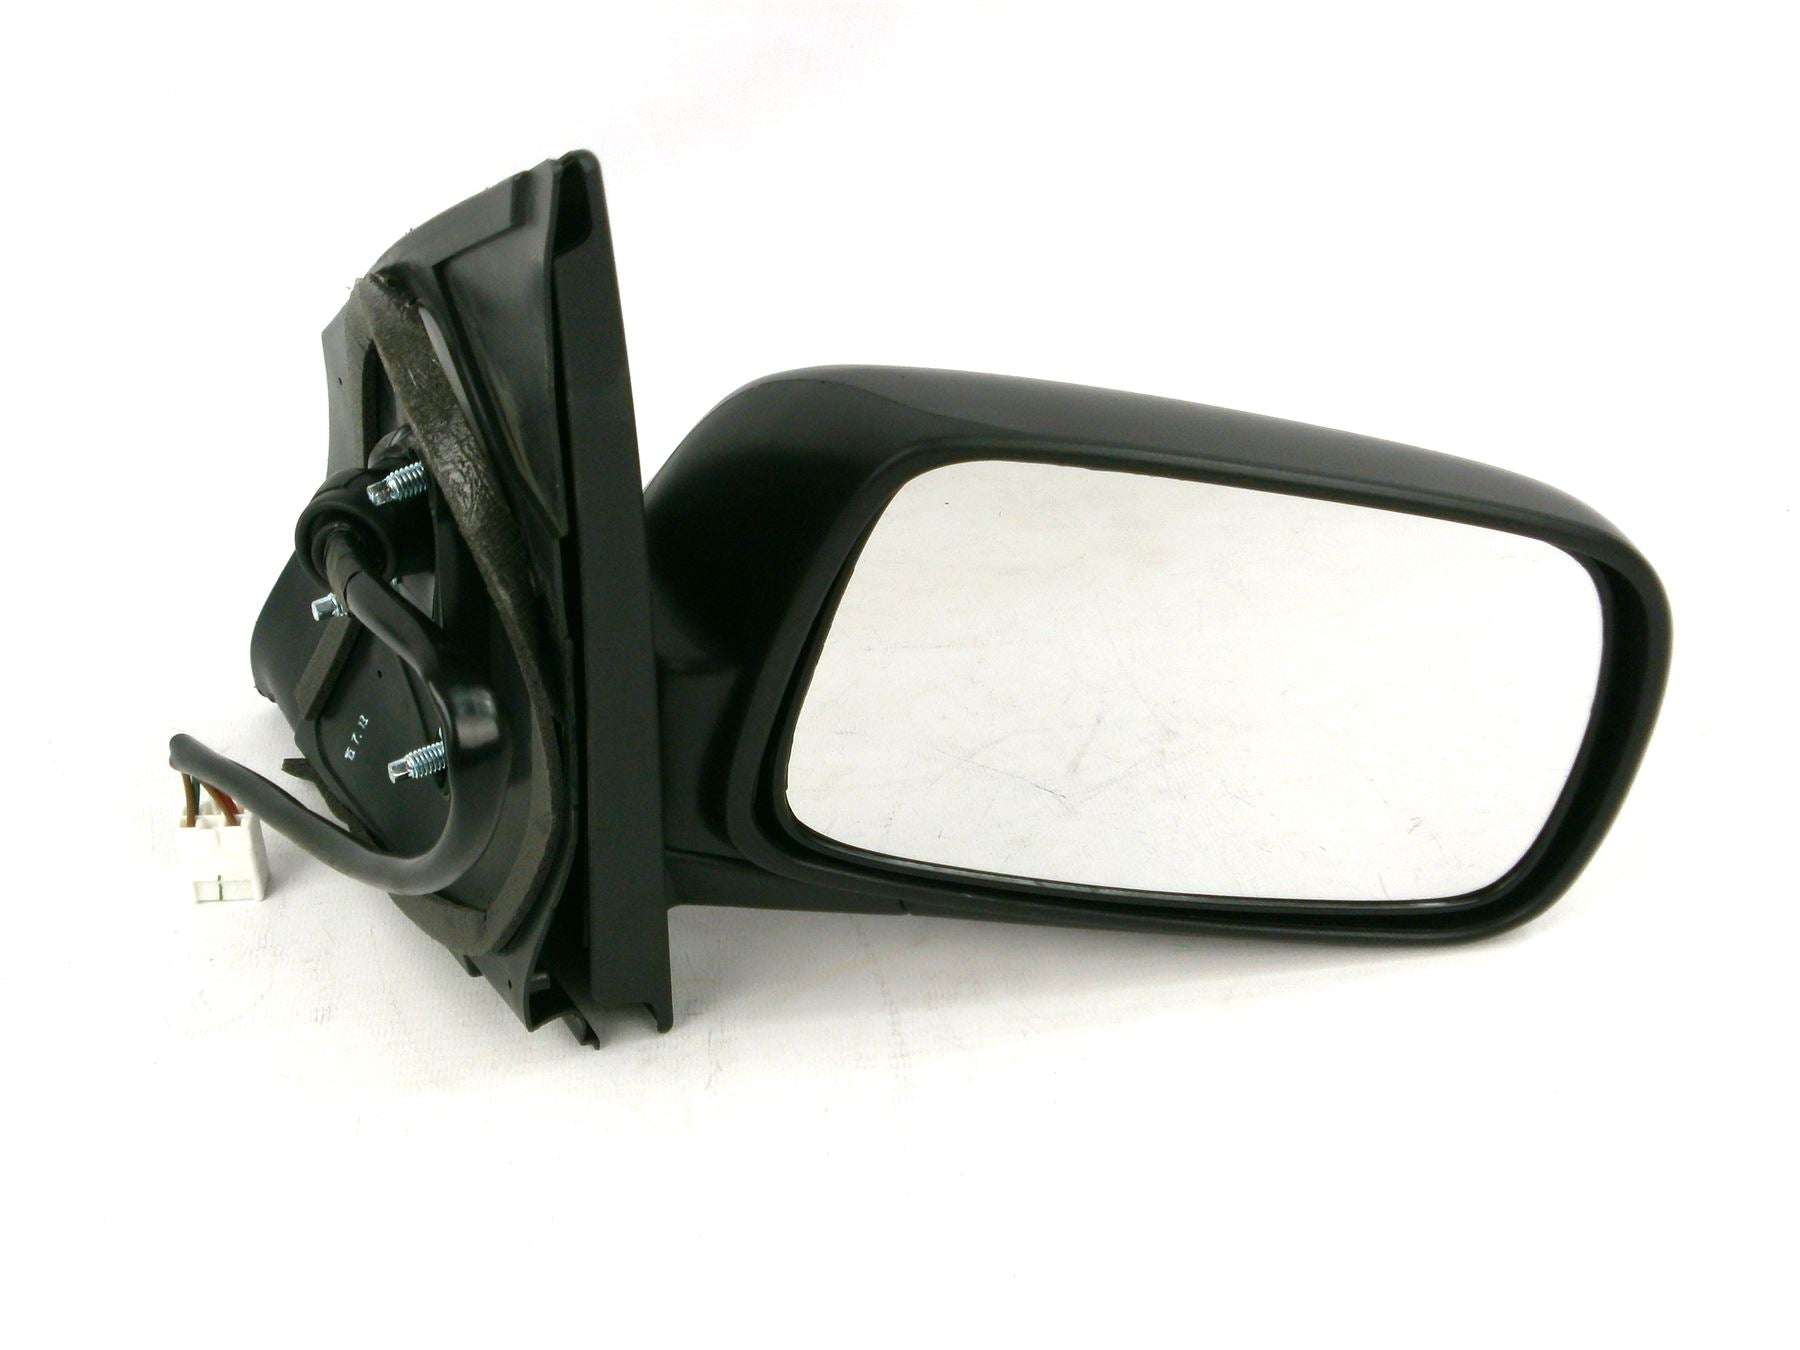 Toyota Yaris Mk.1 1999-5/2003 Electric Wing Mirror Heated Black Drivers Side O/S